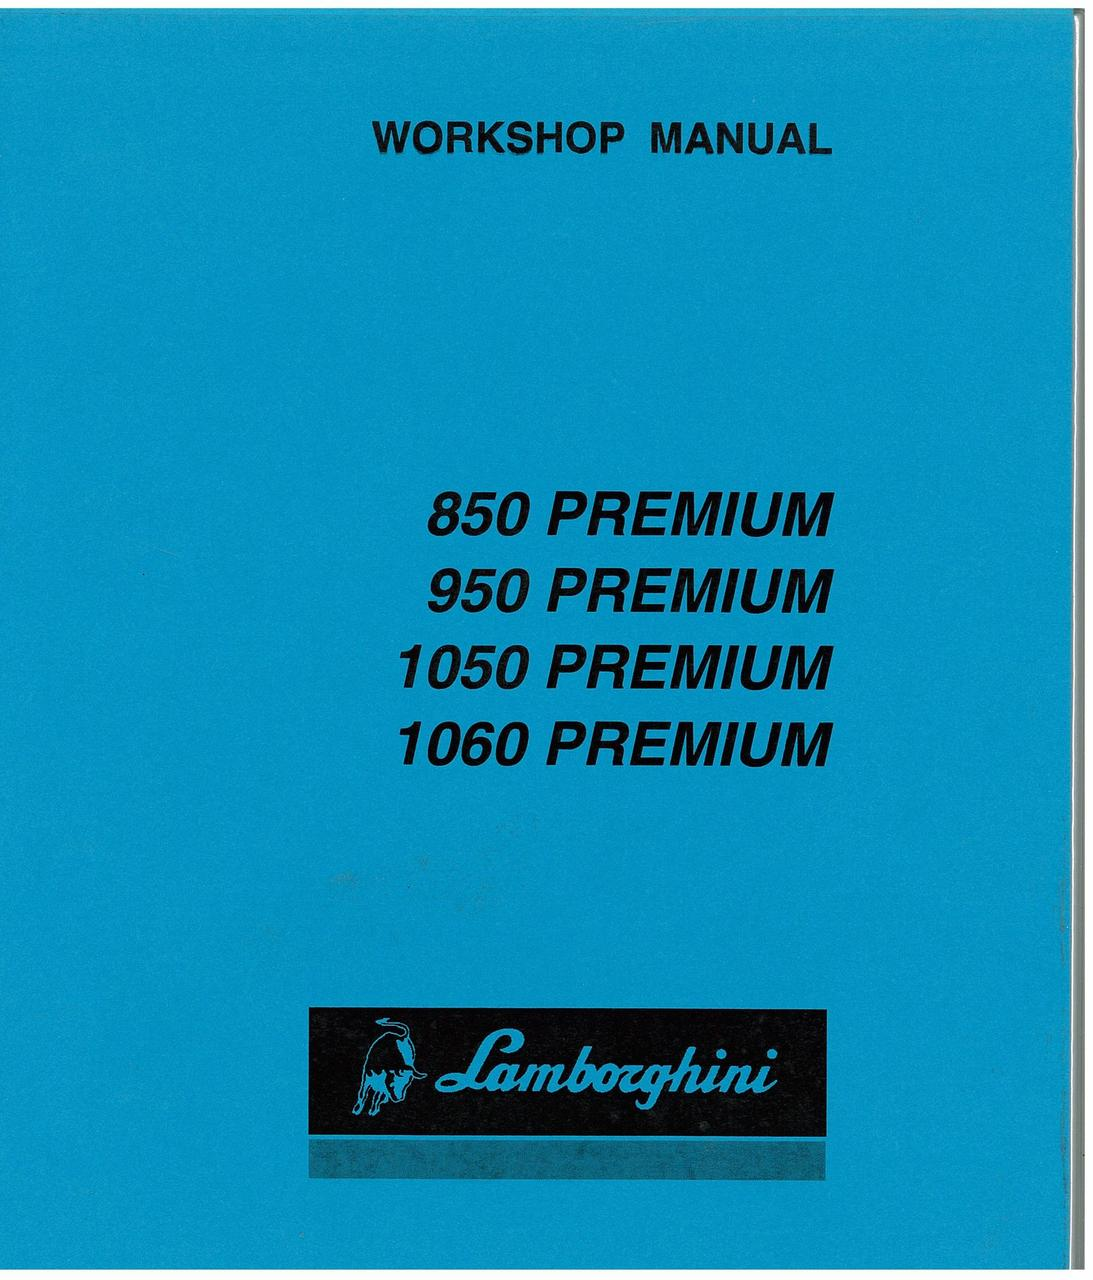 PREMIUM 850 - 950 - 1050 - 1060 - Workshop Manual